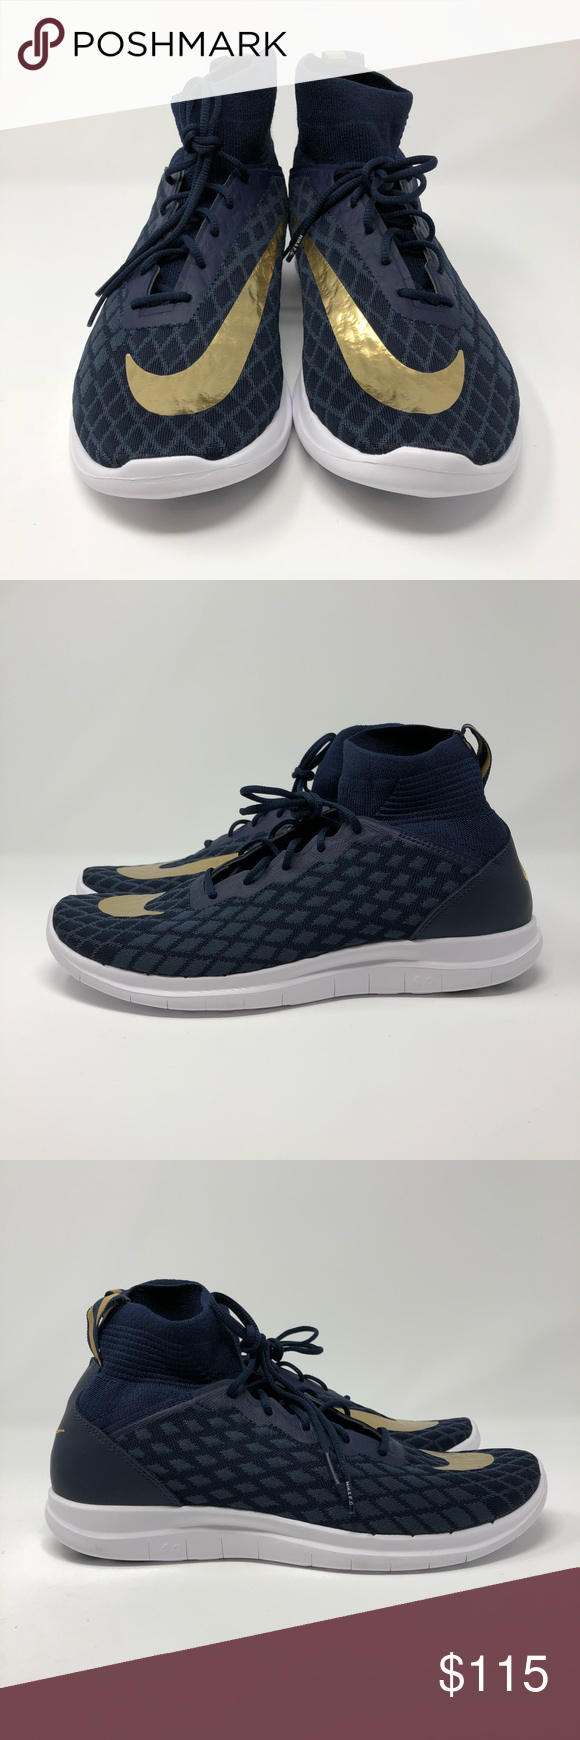 cb43c339d8fb purchase nike free hypervenom mid unboxing youtube 6960a 9537b  promo code nike  free hypervenom 3 fc fk navy gold shoes soccer style for street wear